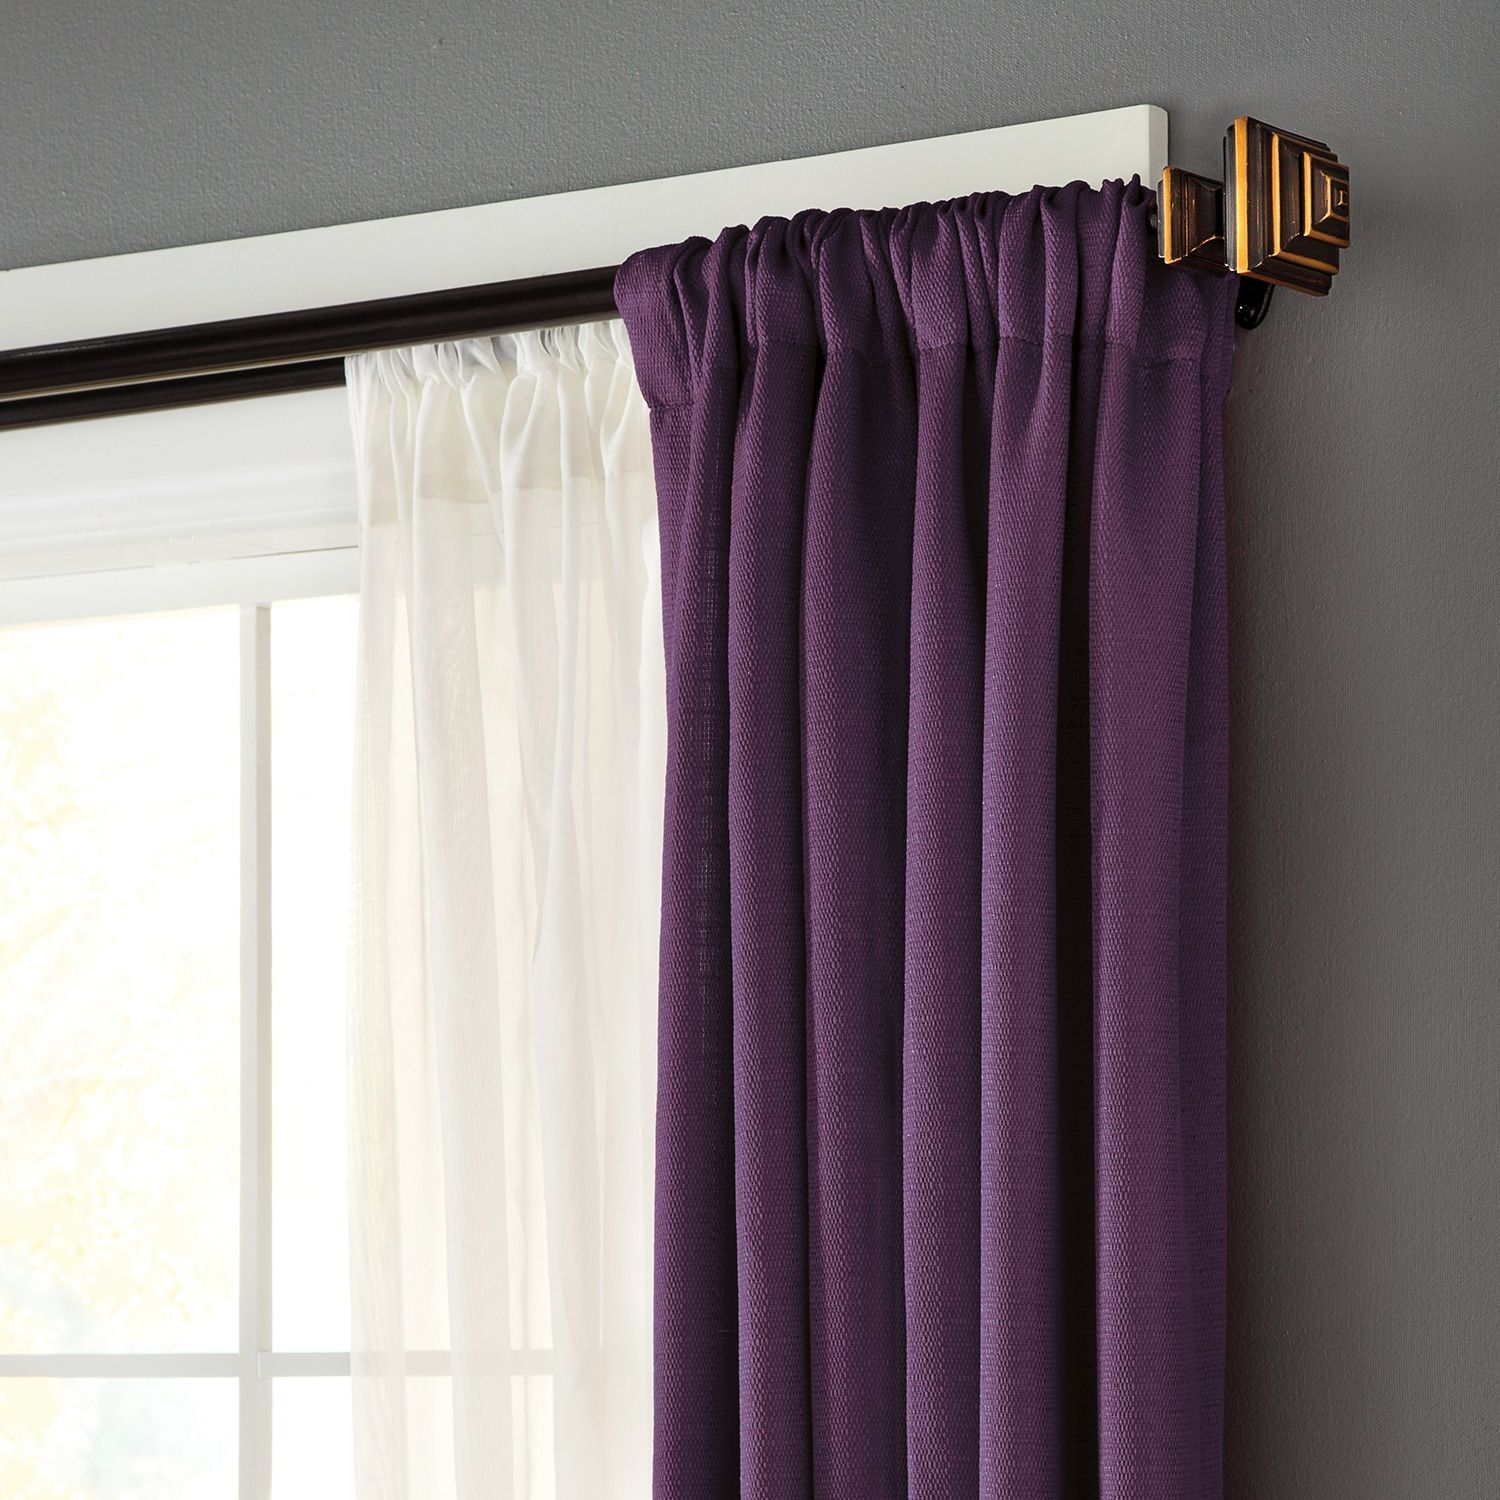 Eclipse Stacey Window Curtain Rod Stacey Eclipse Window Rod Window Curtain Rods Curtain Rods Window Curtains